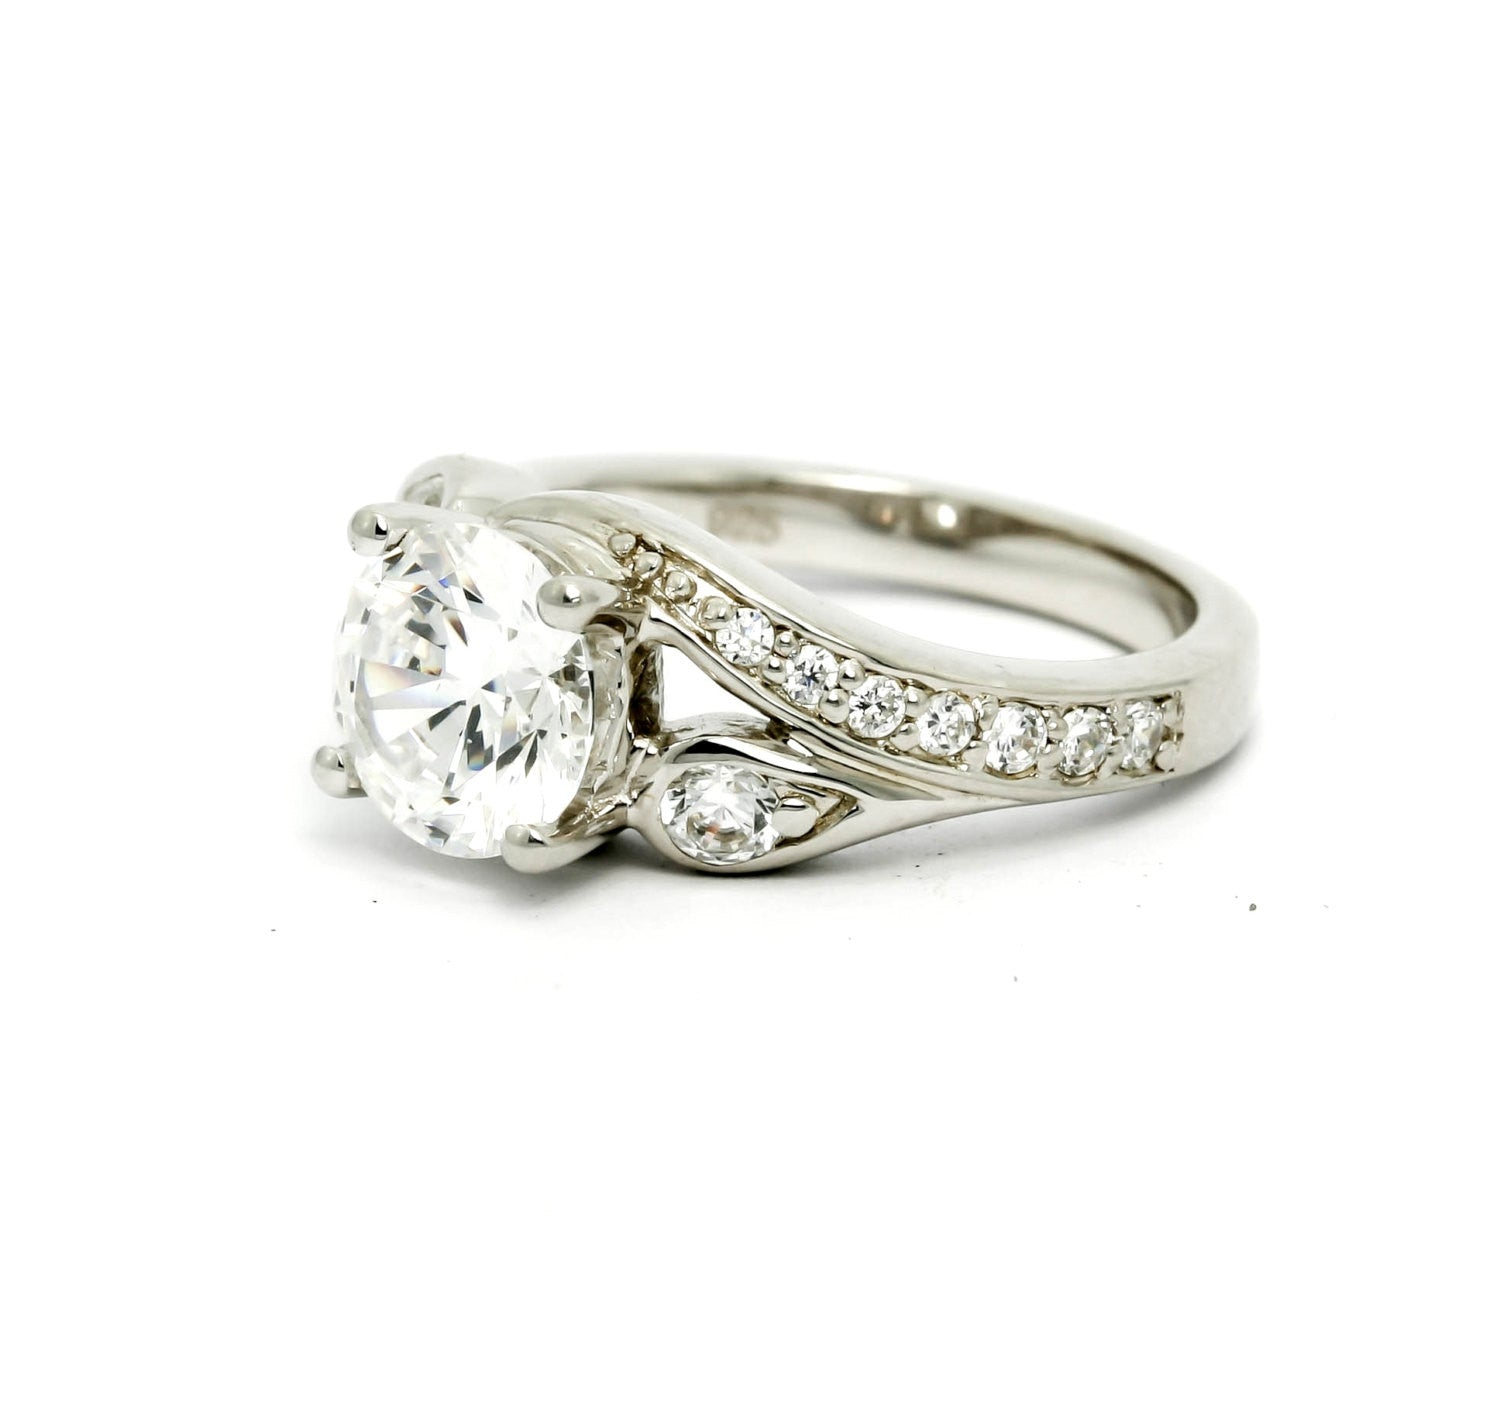 "Unique Design Shank, Diamond Engagement Ring 8 mm (2 Carat) ""Forever Brilliant"" Moissanite Anniversary Ring - FBY11600SE"